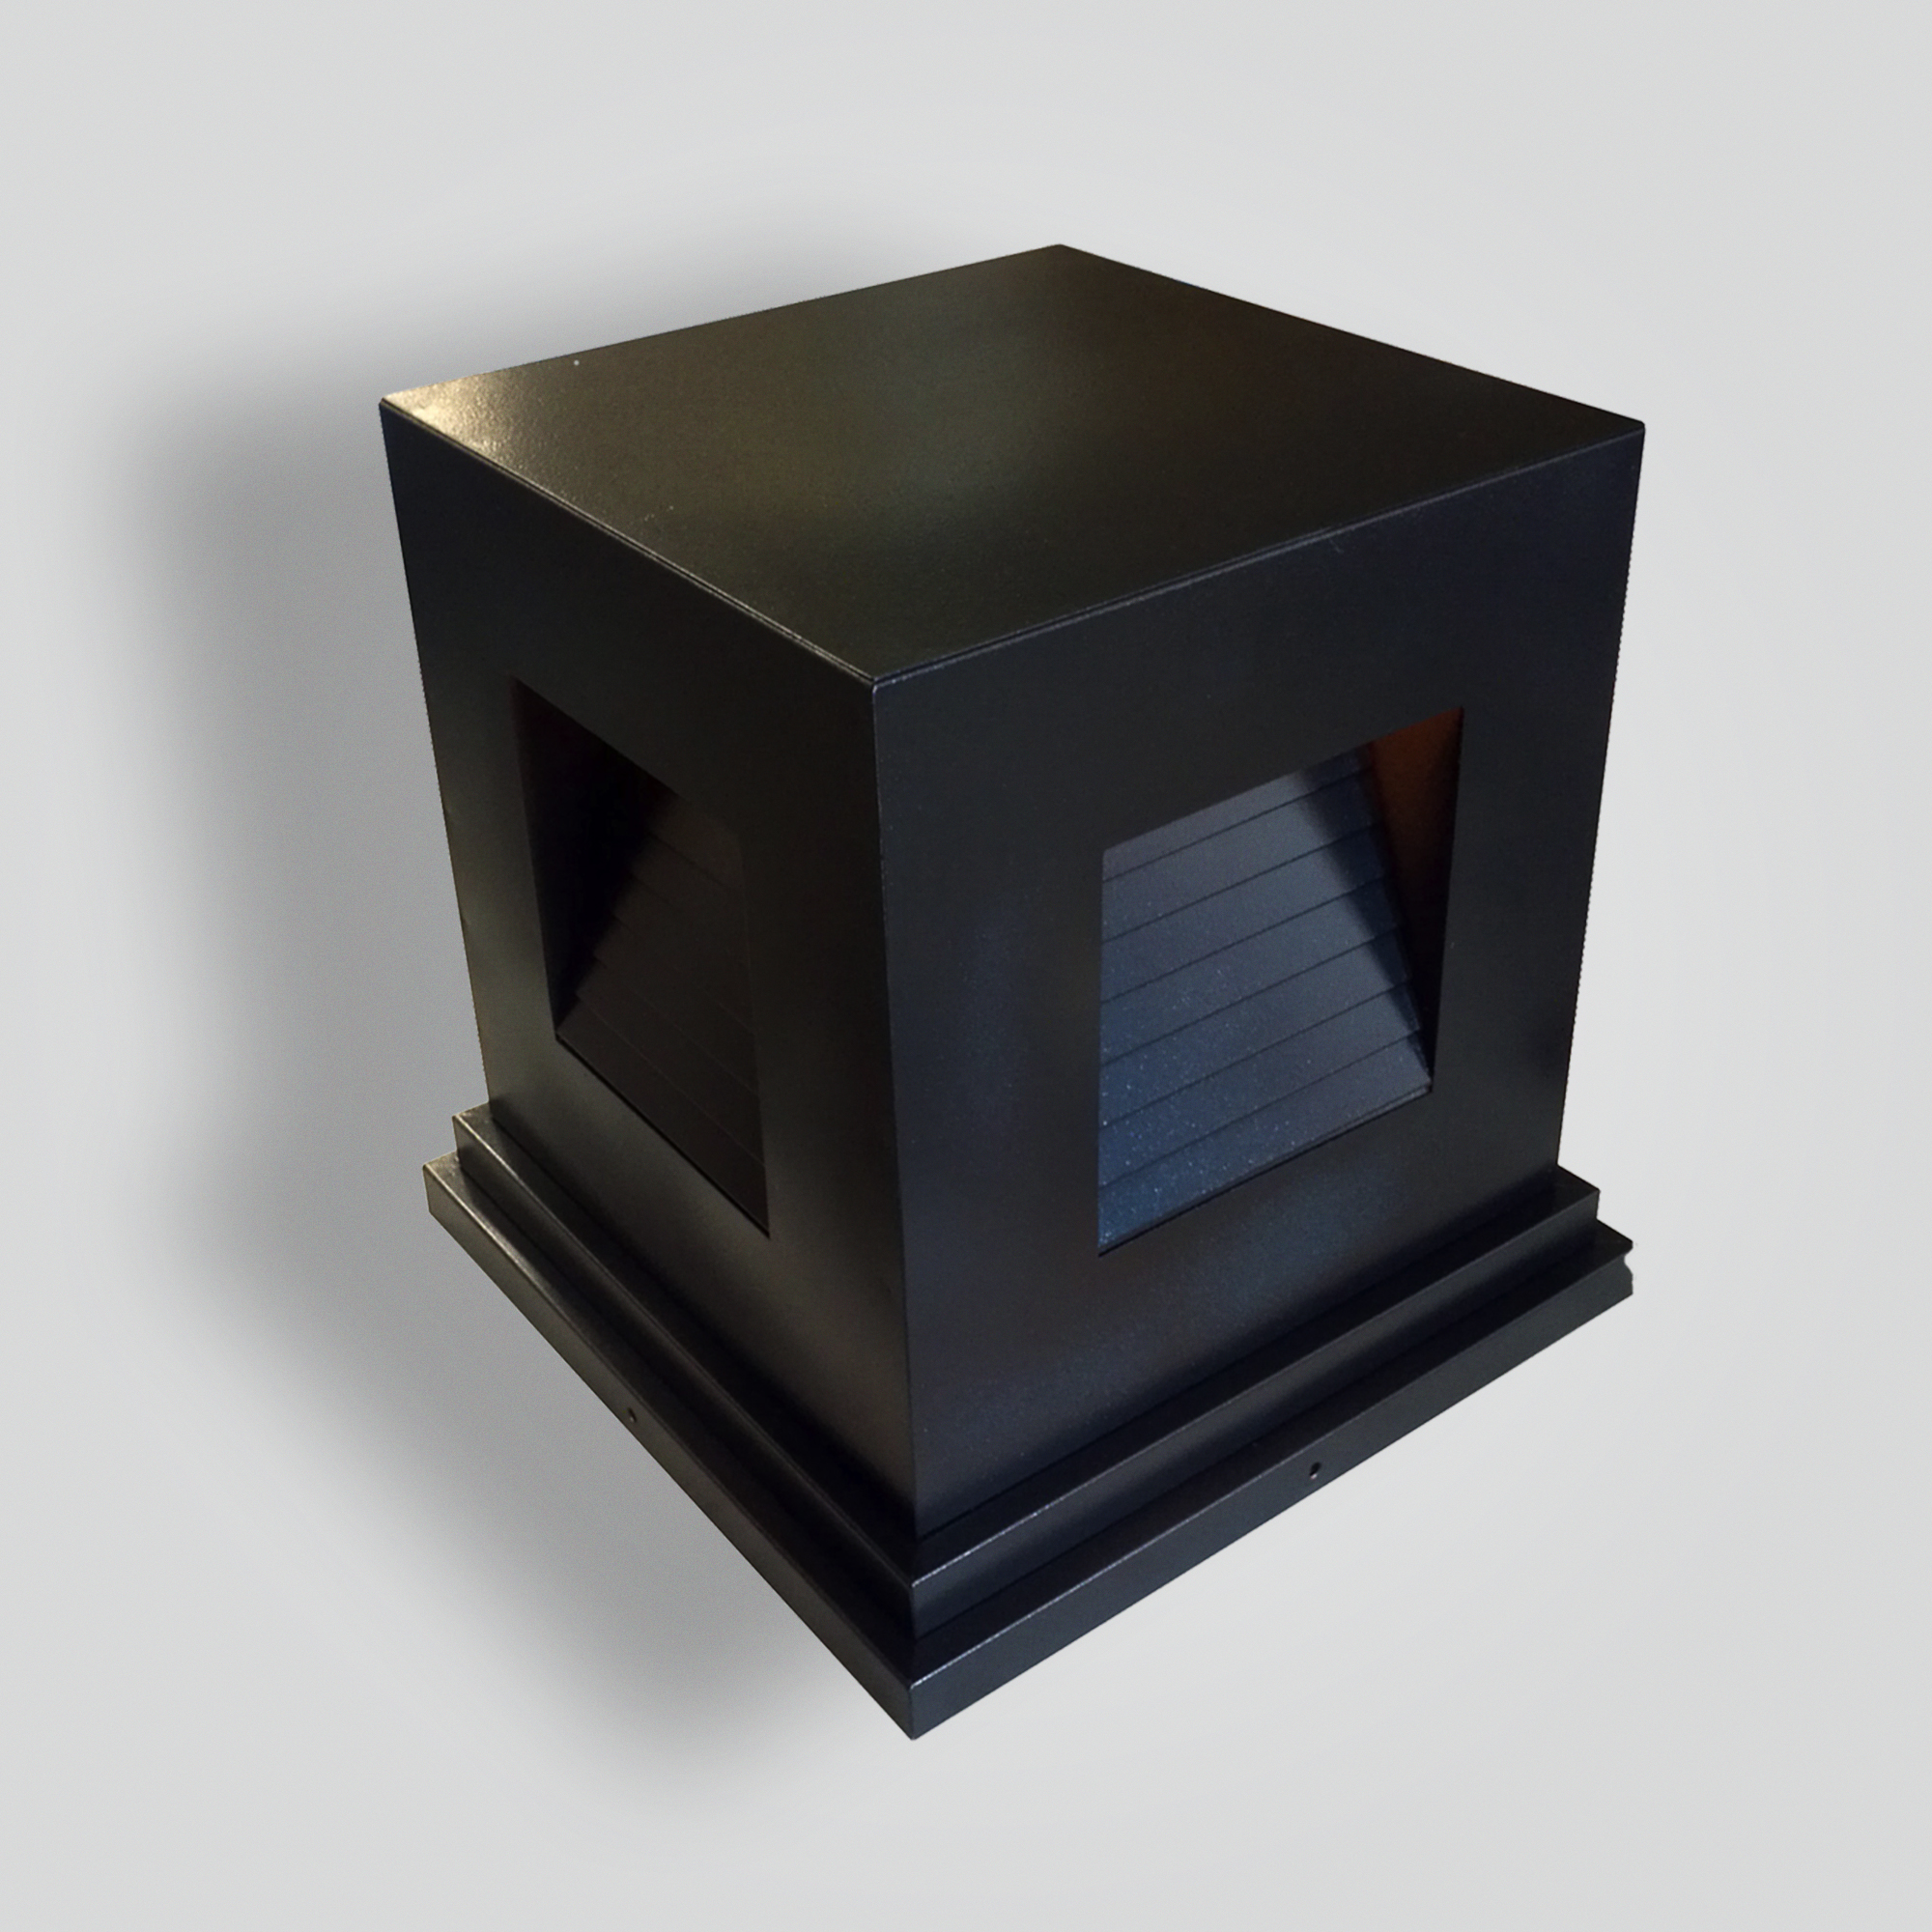 792-ind-br-p-sh Induction Square Pilaster – ADG Lighting Collection